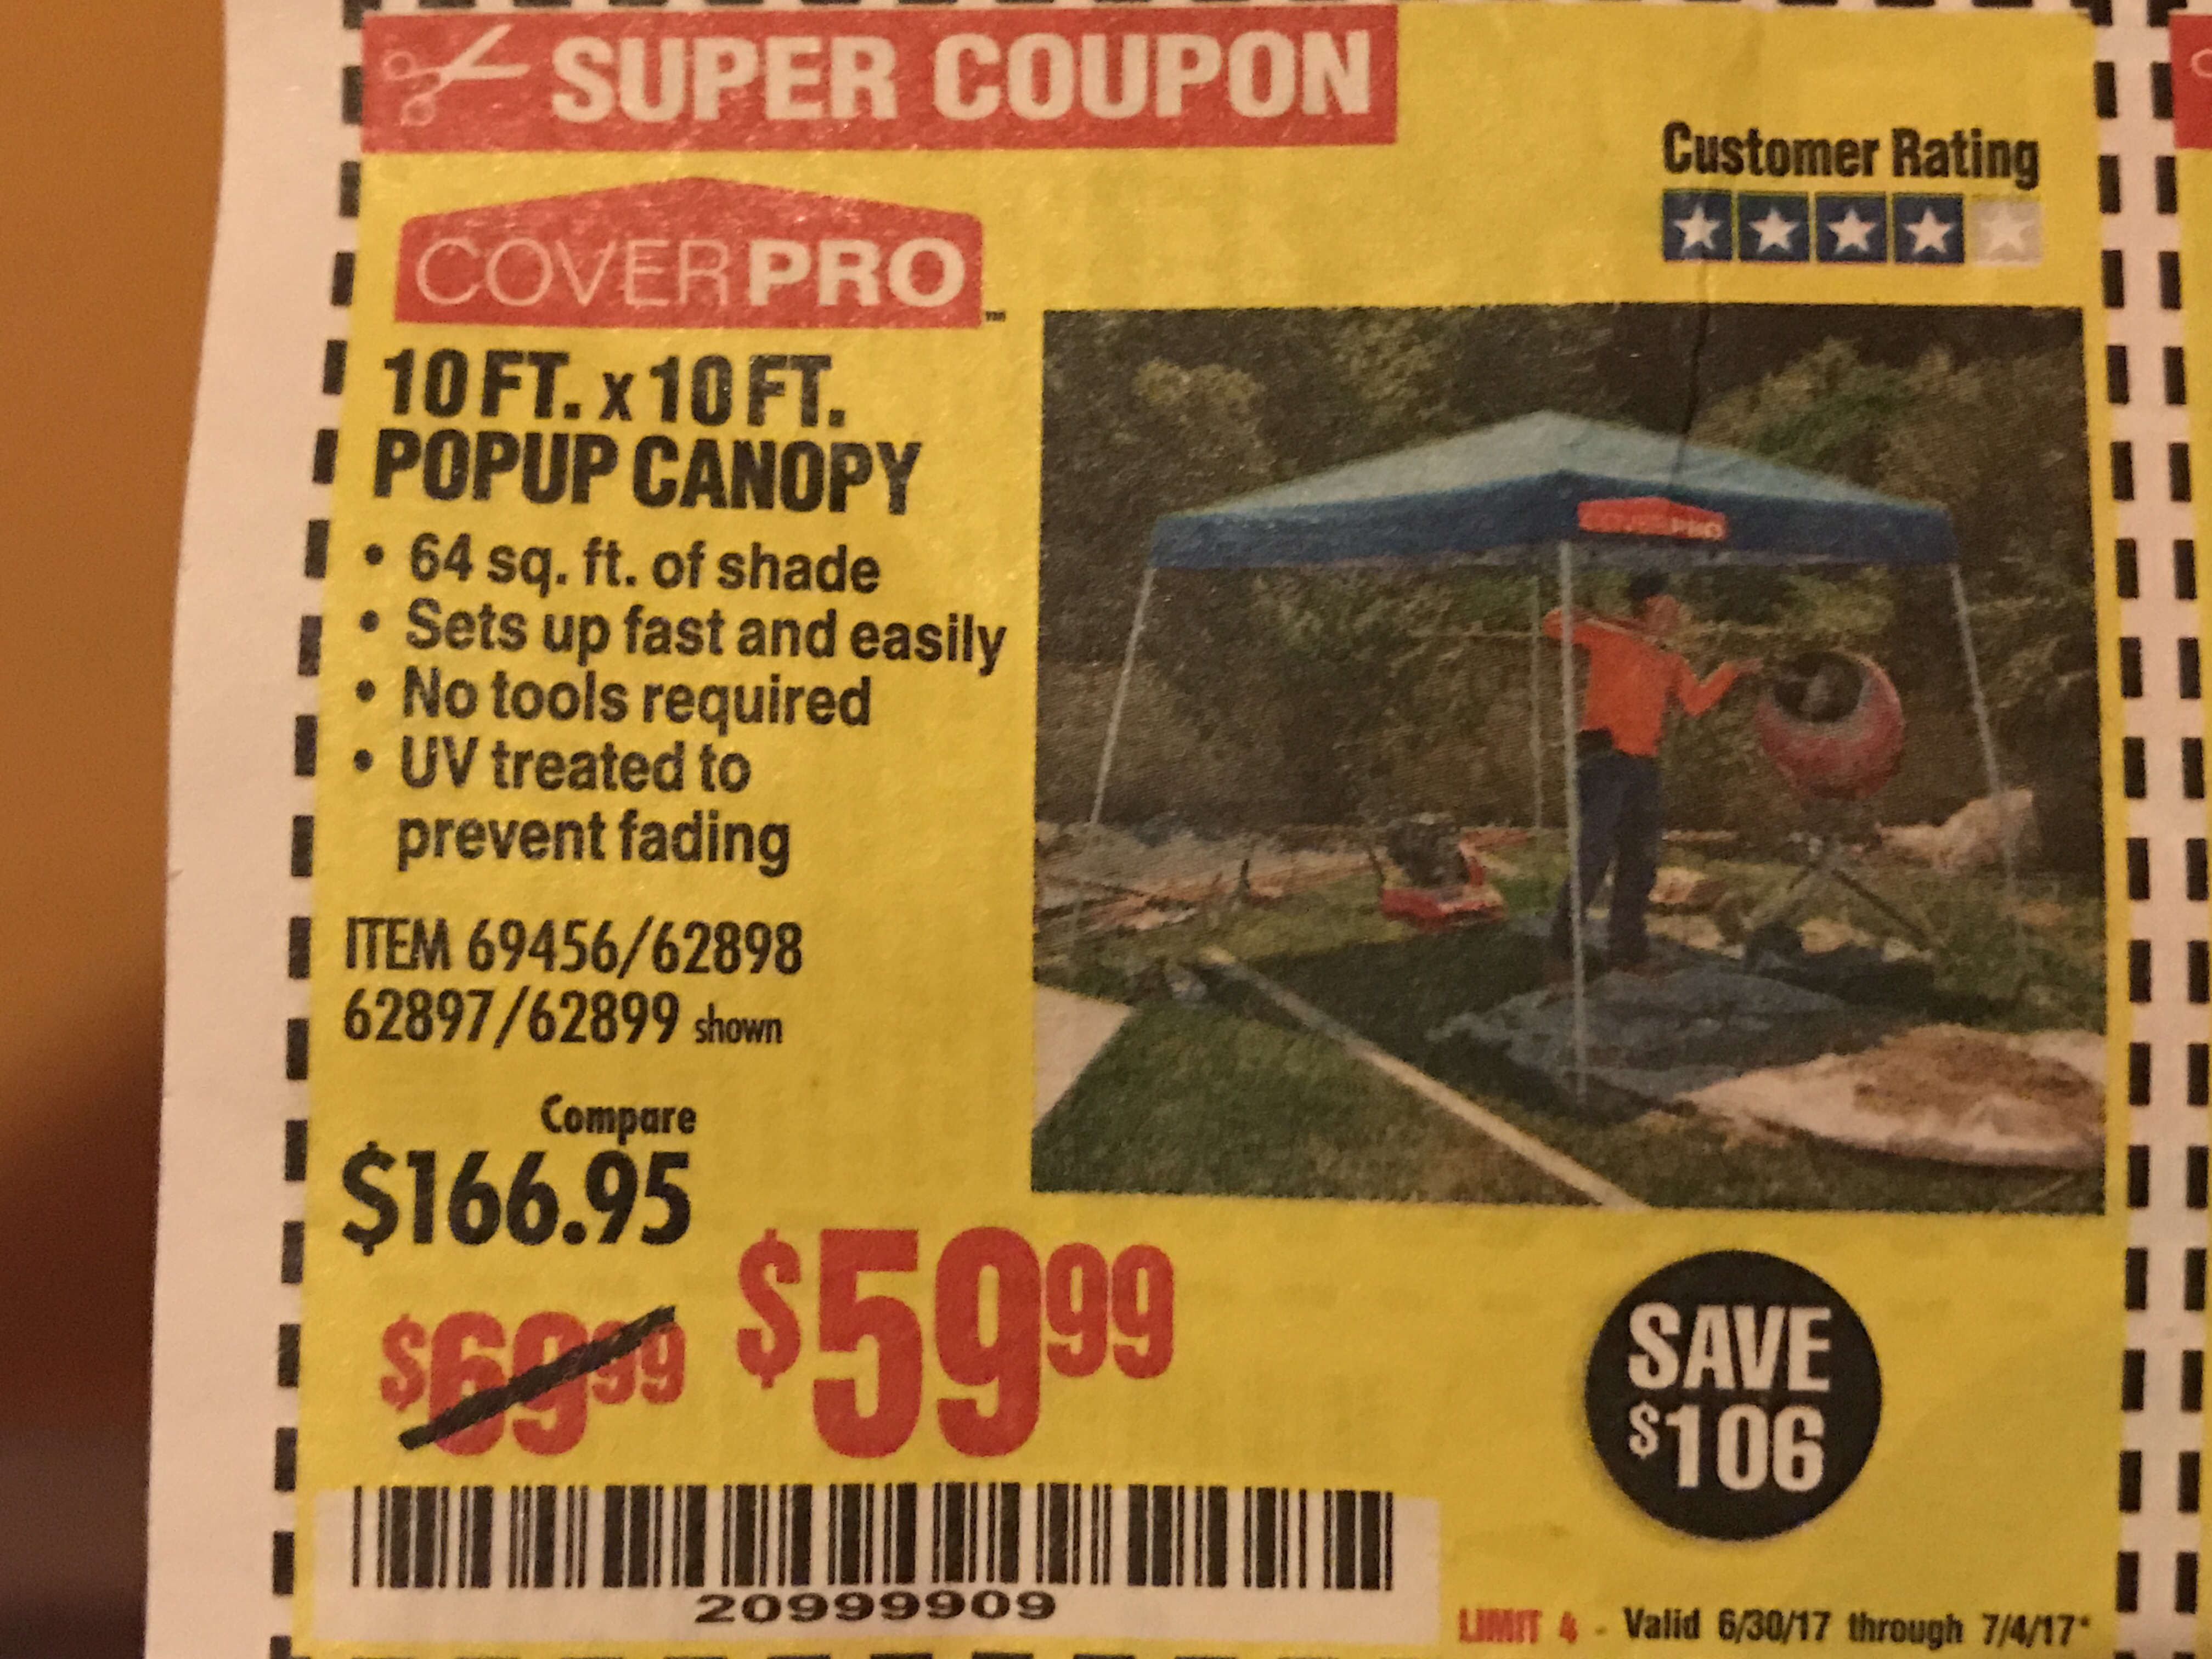 Harbor Freight 10 FT. x 10 FT. POPUP CANOPY coupon